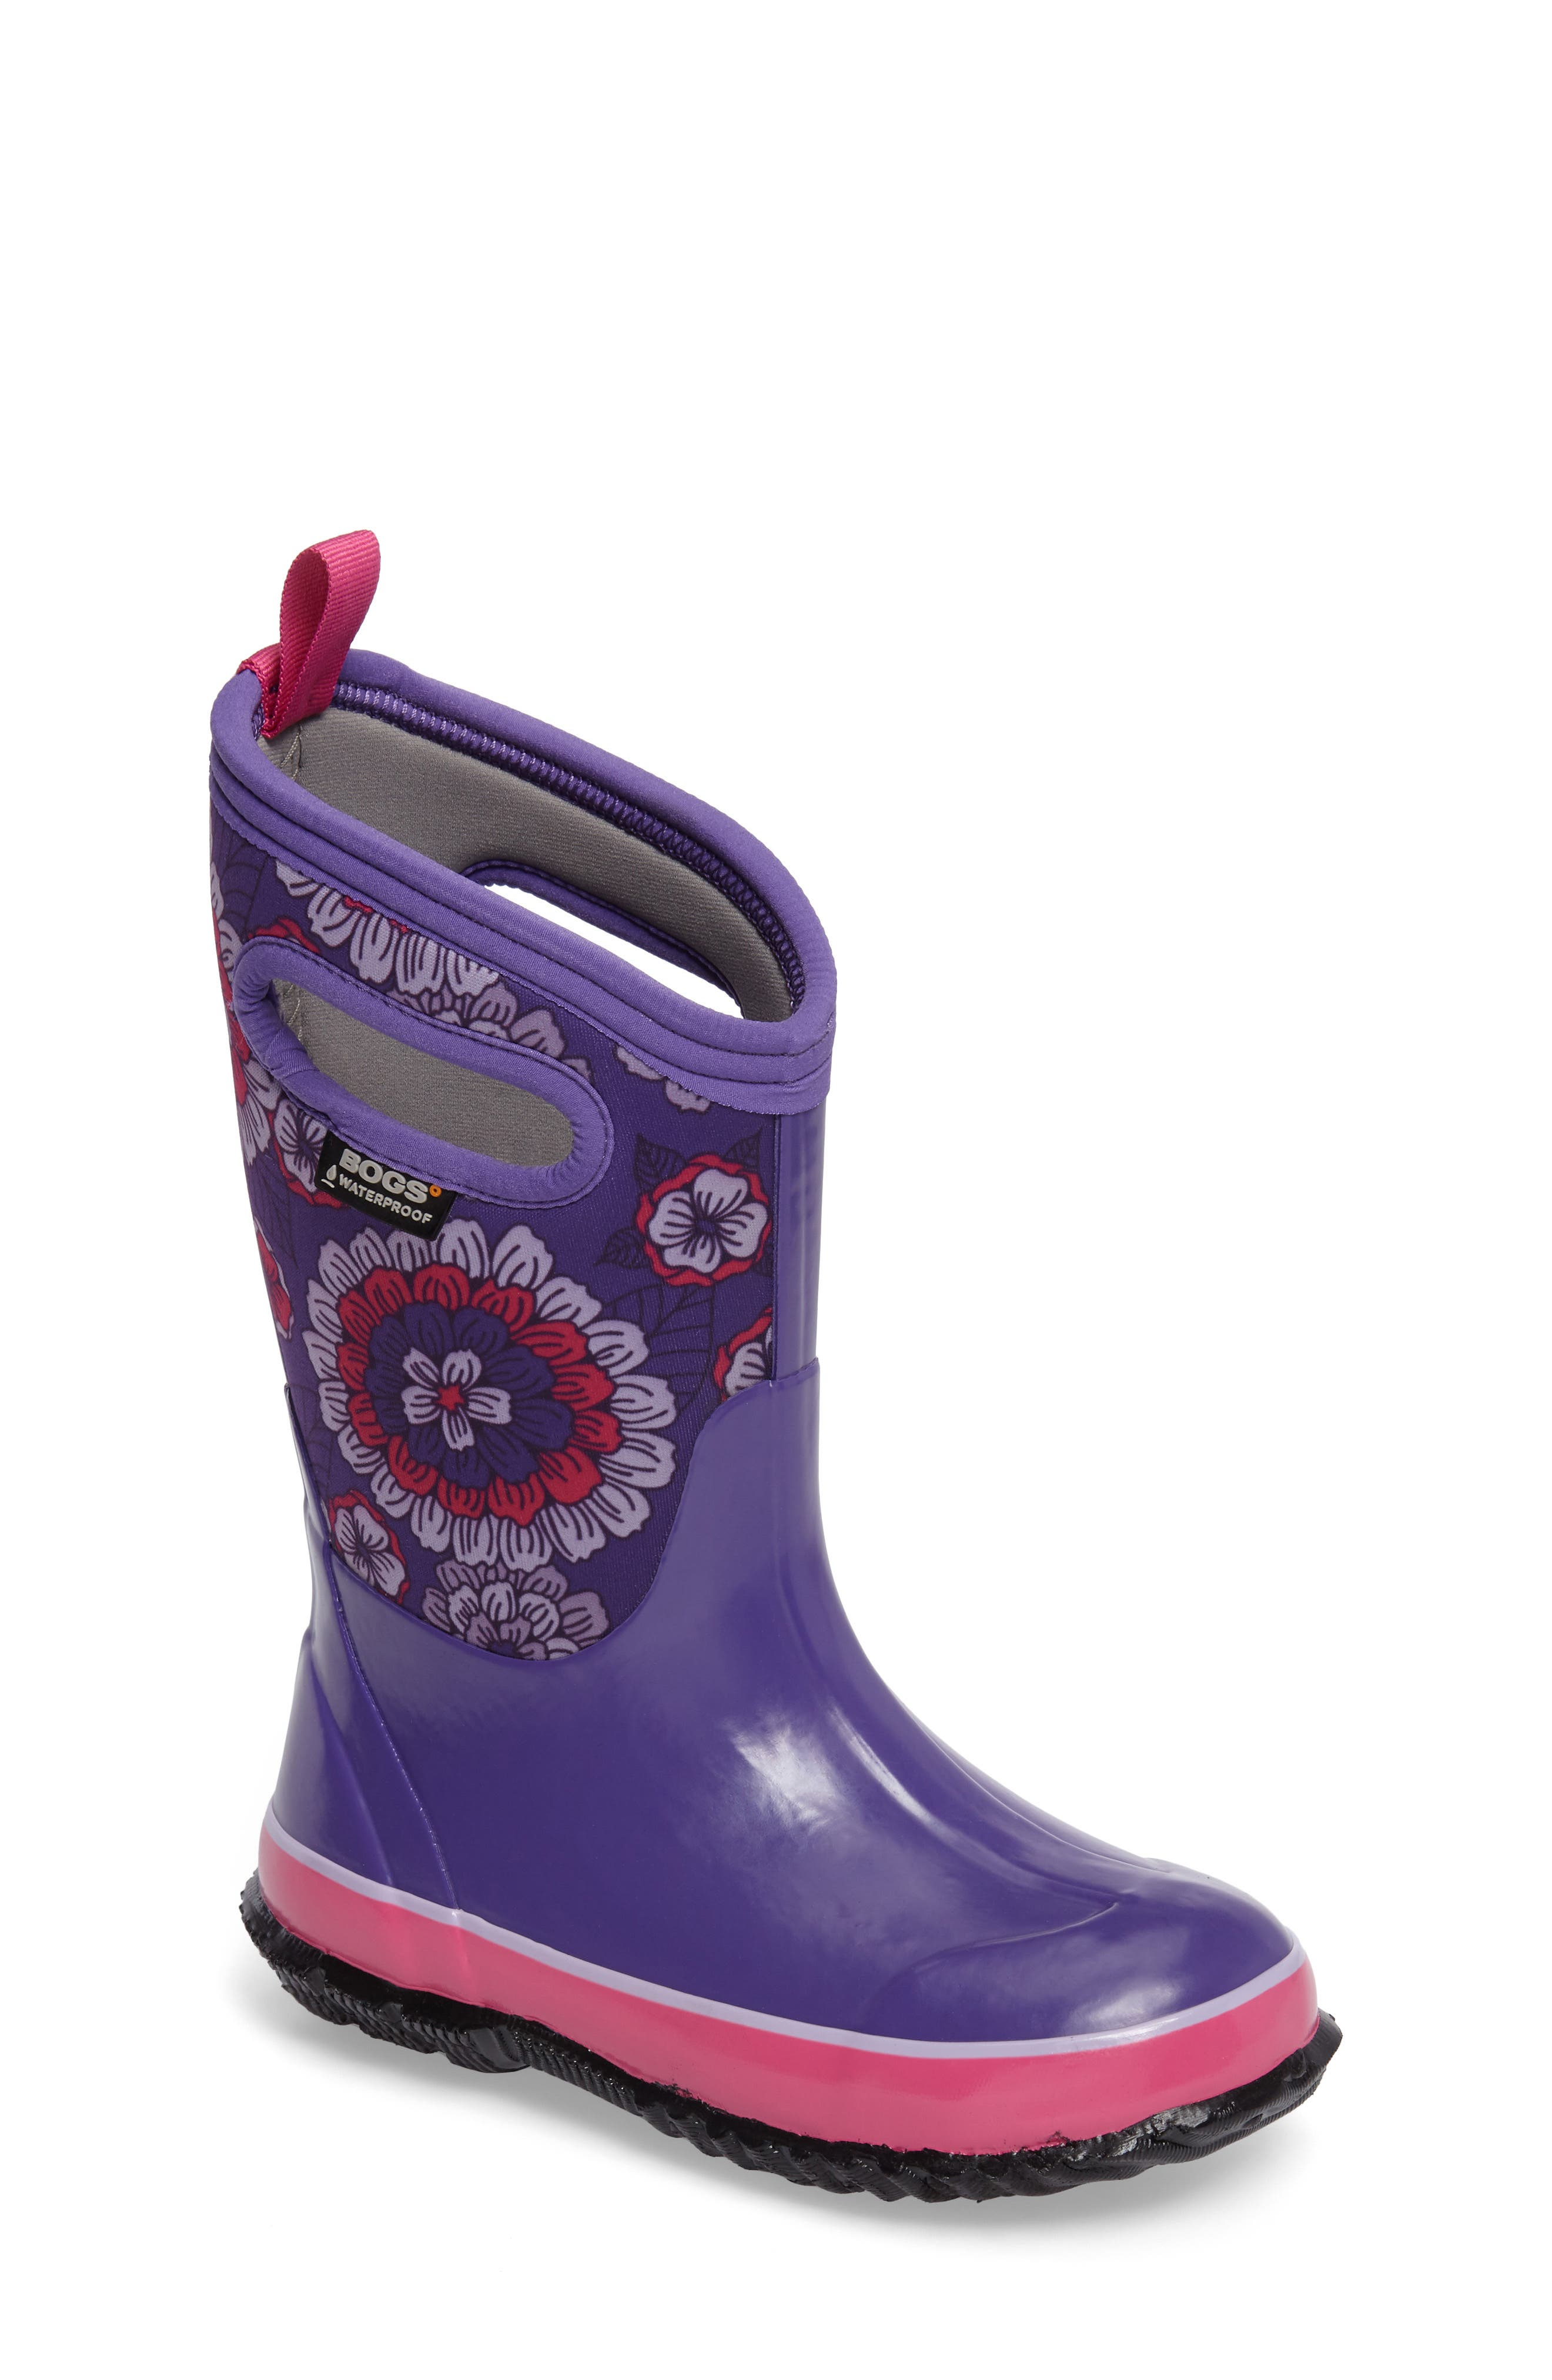 Main Image - Bogs Classic Pansies Insulated Waterproof Rain Boot (Toddler, Little Kid & Big Kid)